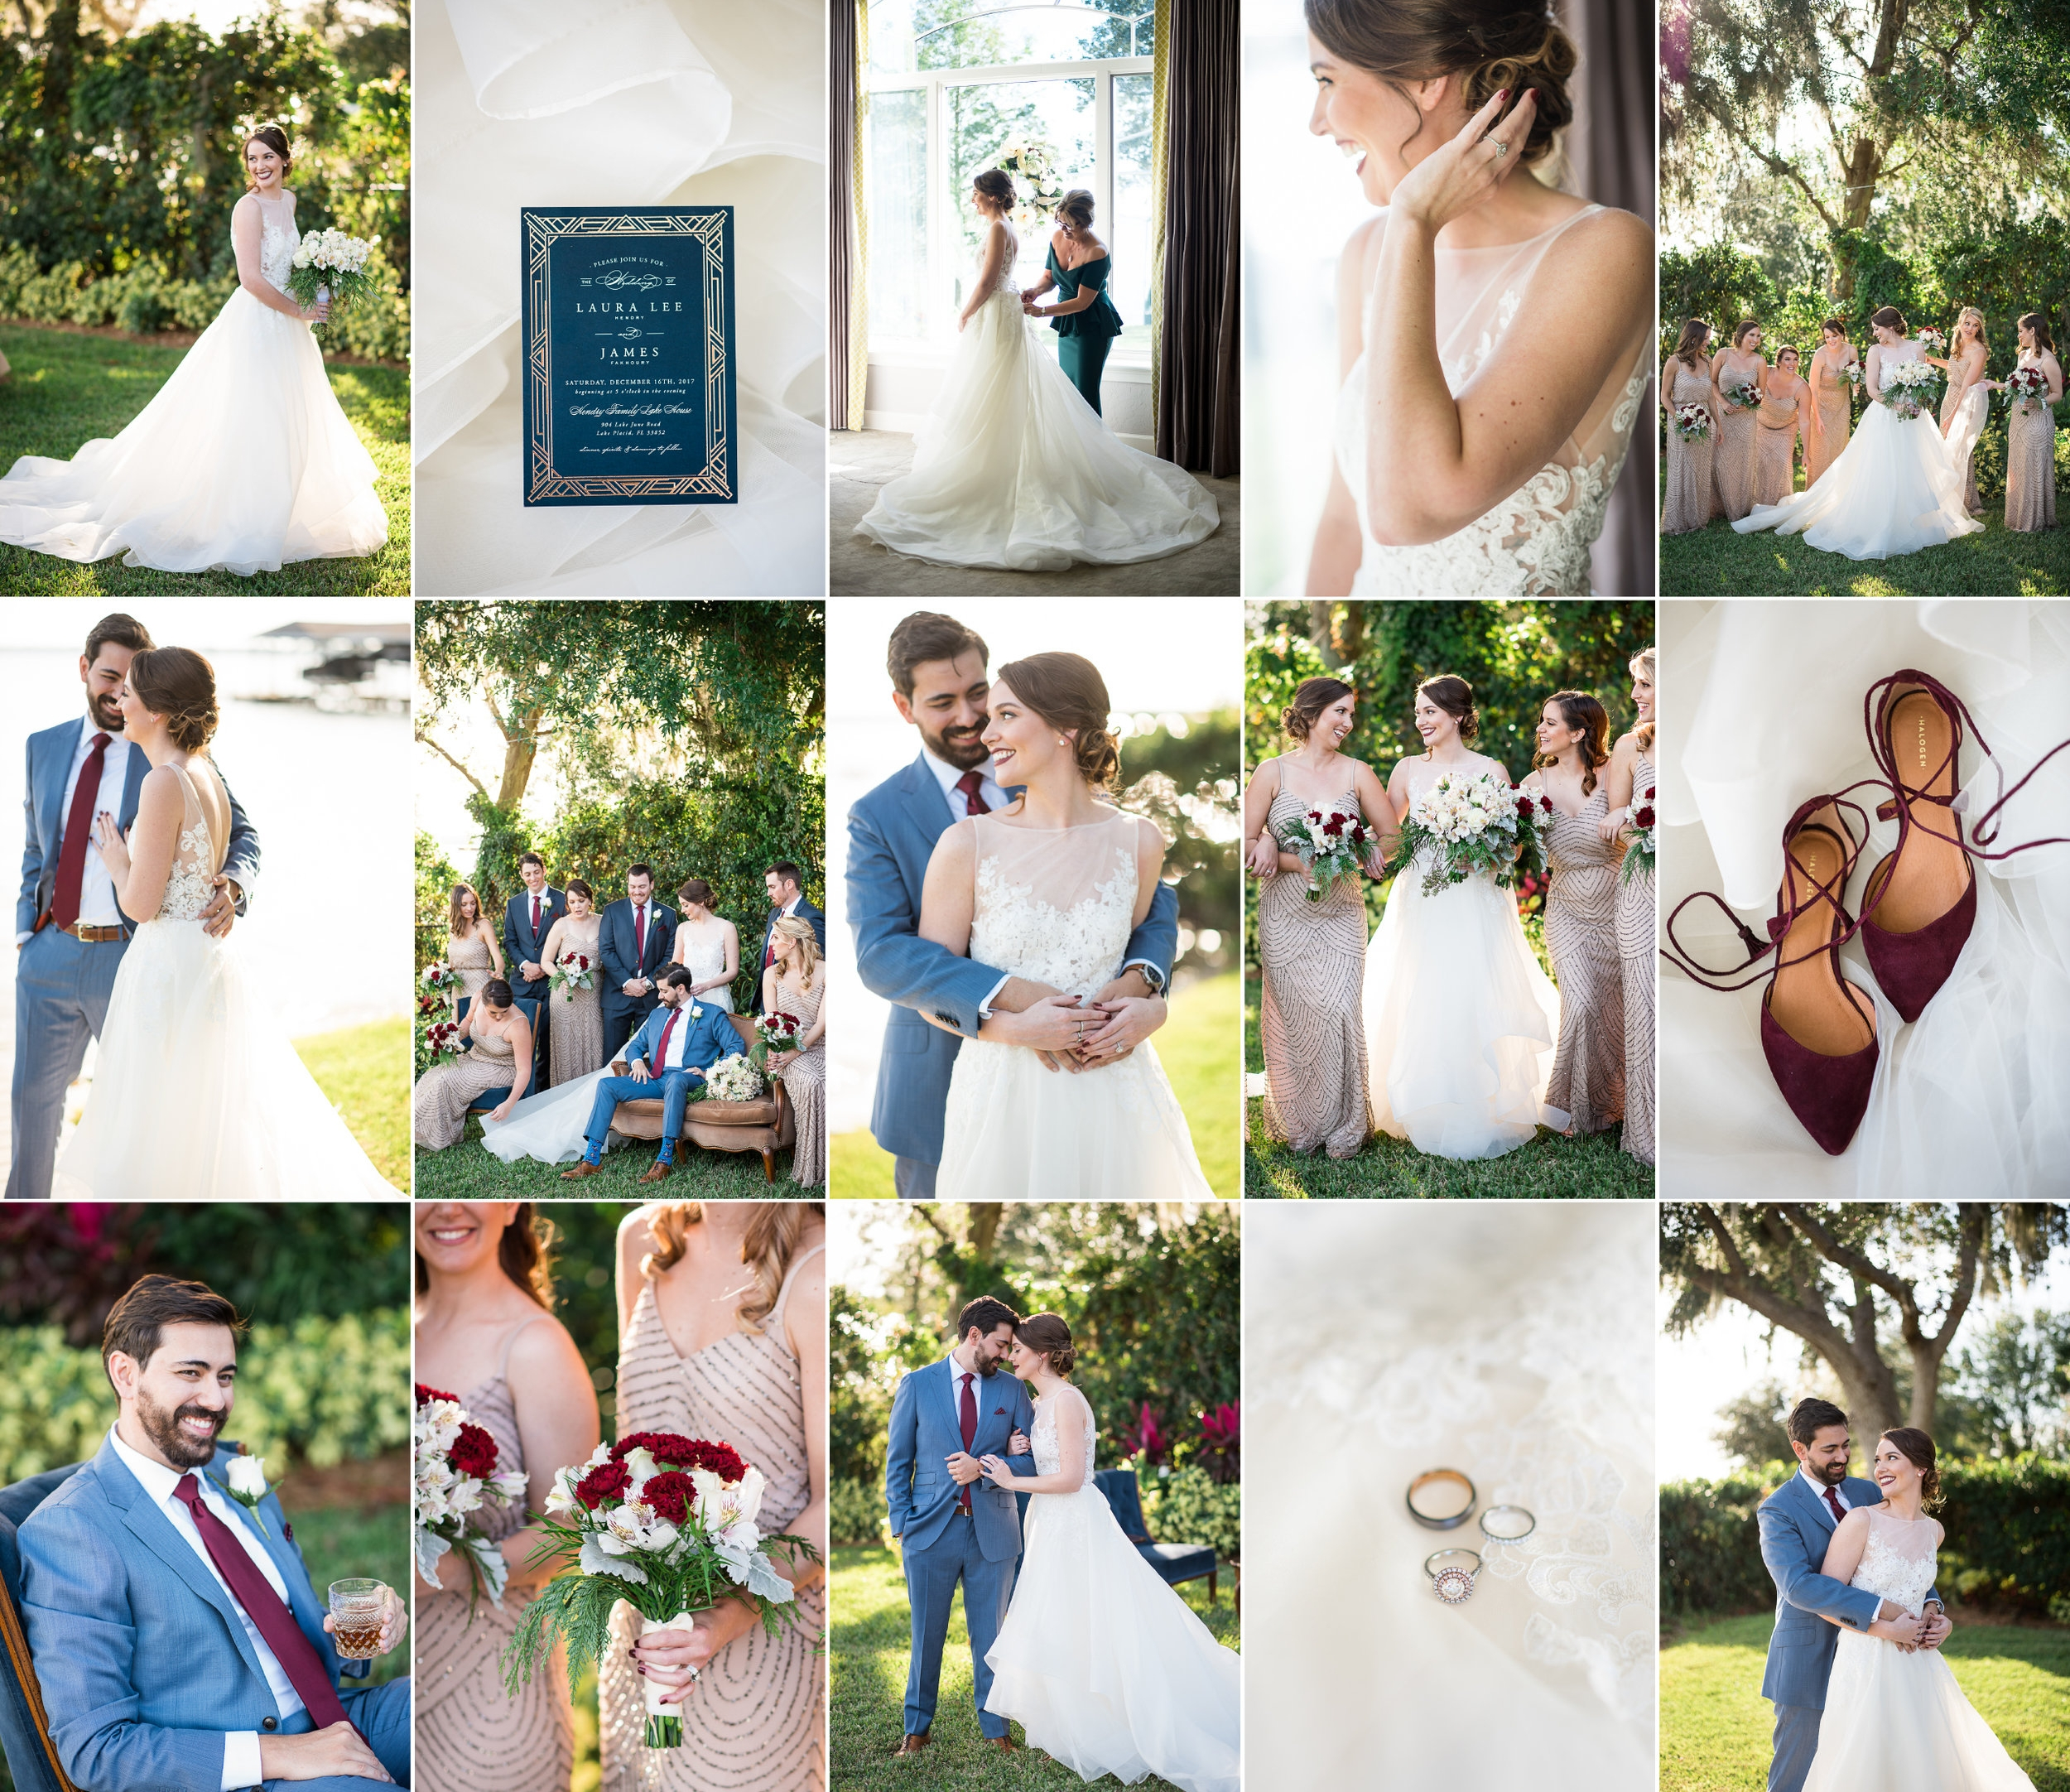 Laura Lee + James - At Home Lakeside Lake Placid, FL Wedding with Caroline Maxcy Photography